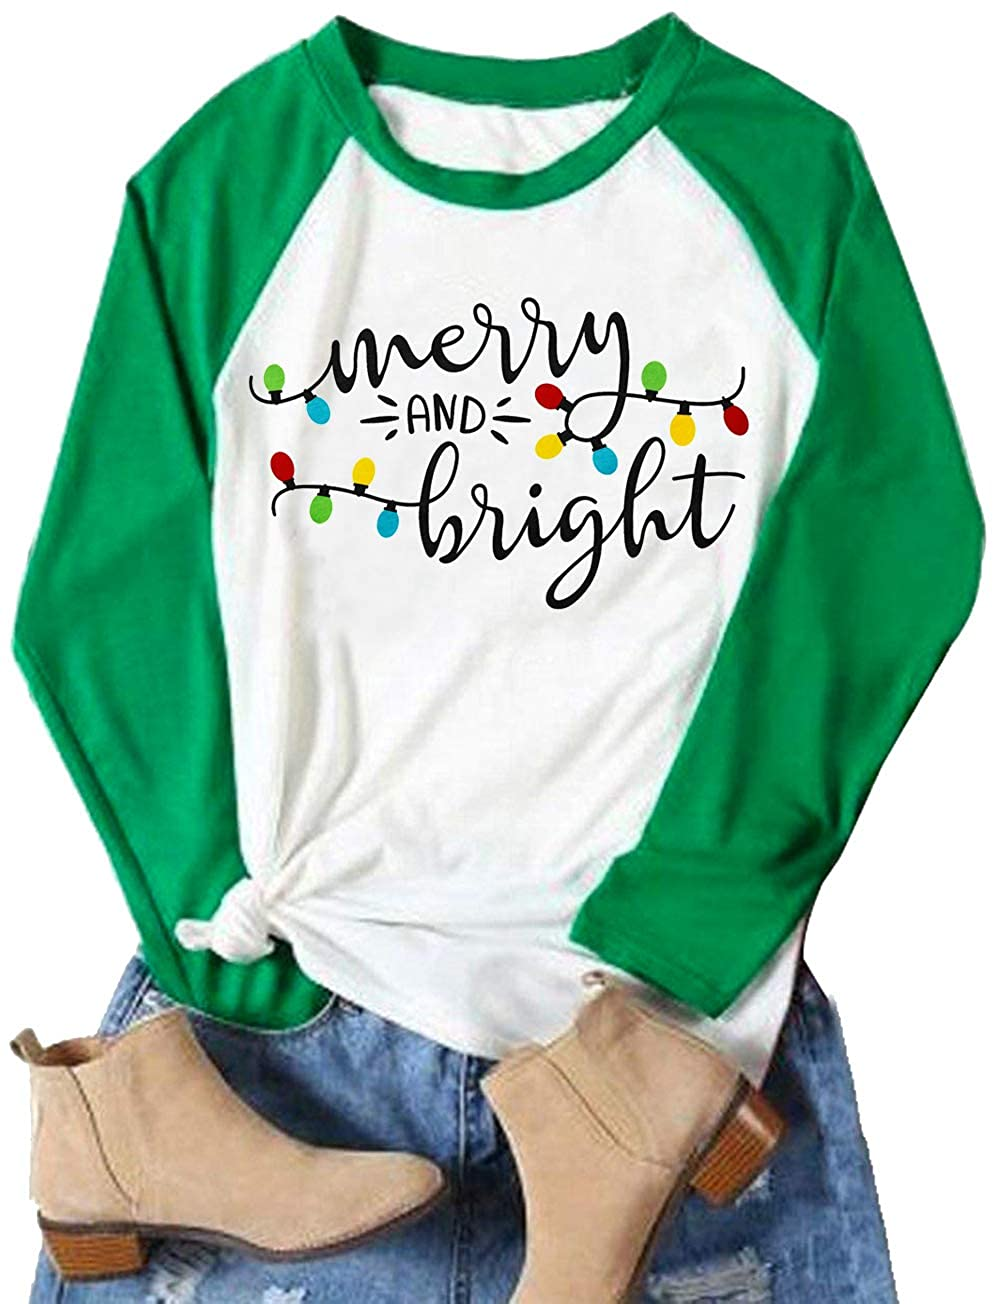 TAOHONG Women Merry and Bright Shirts Christmas Lights T-Shirt Splicing Long Sleeve Holiday Blouse Tops